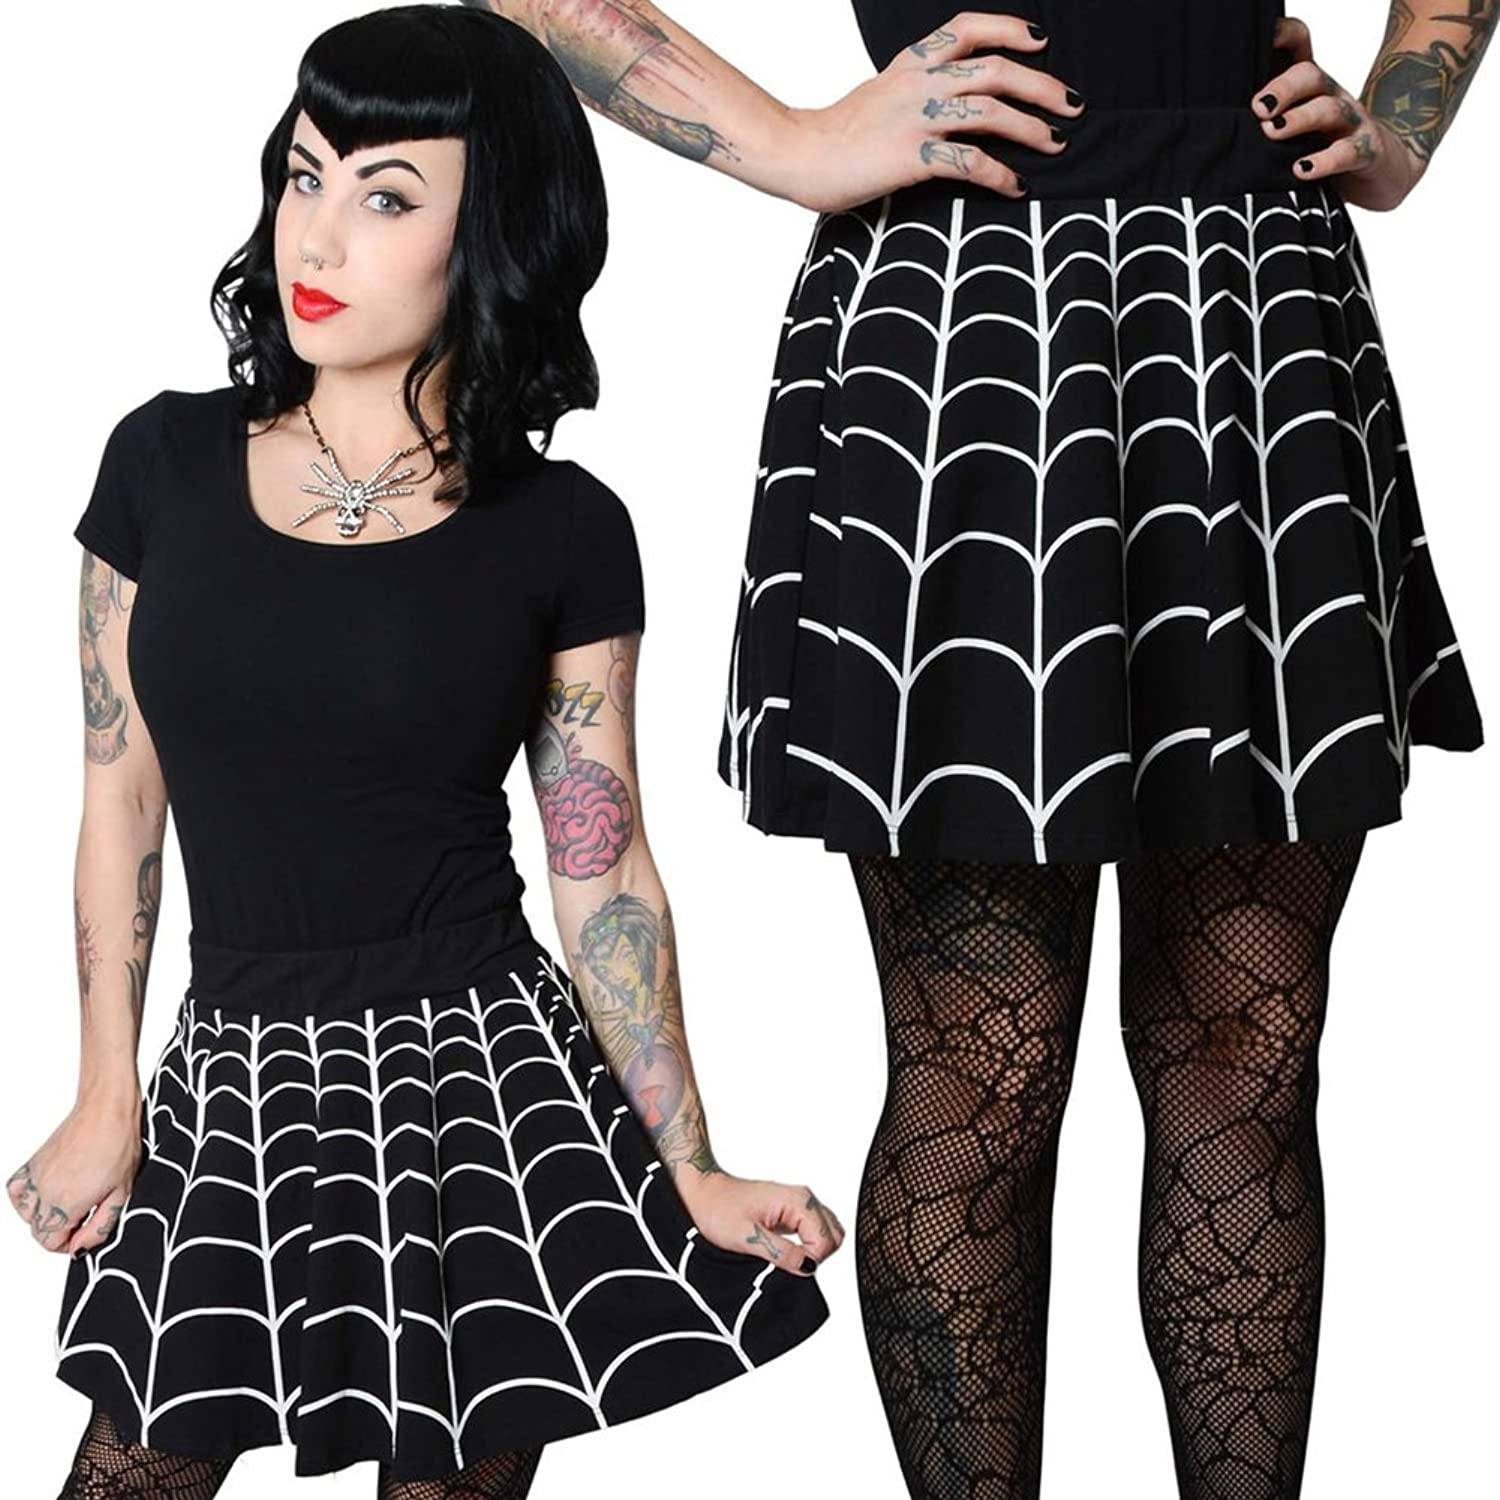 50 Vintage Halloween Costume Ideas Web White Skater Skirt  AT vintagedancer.com